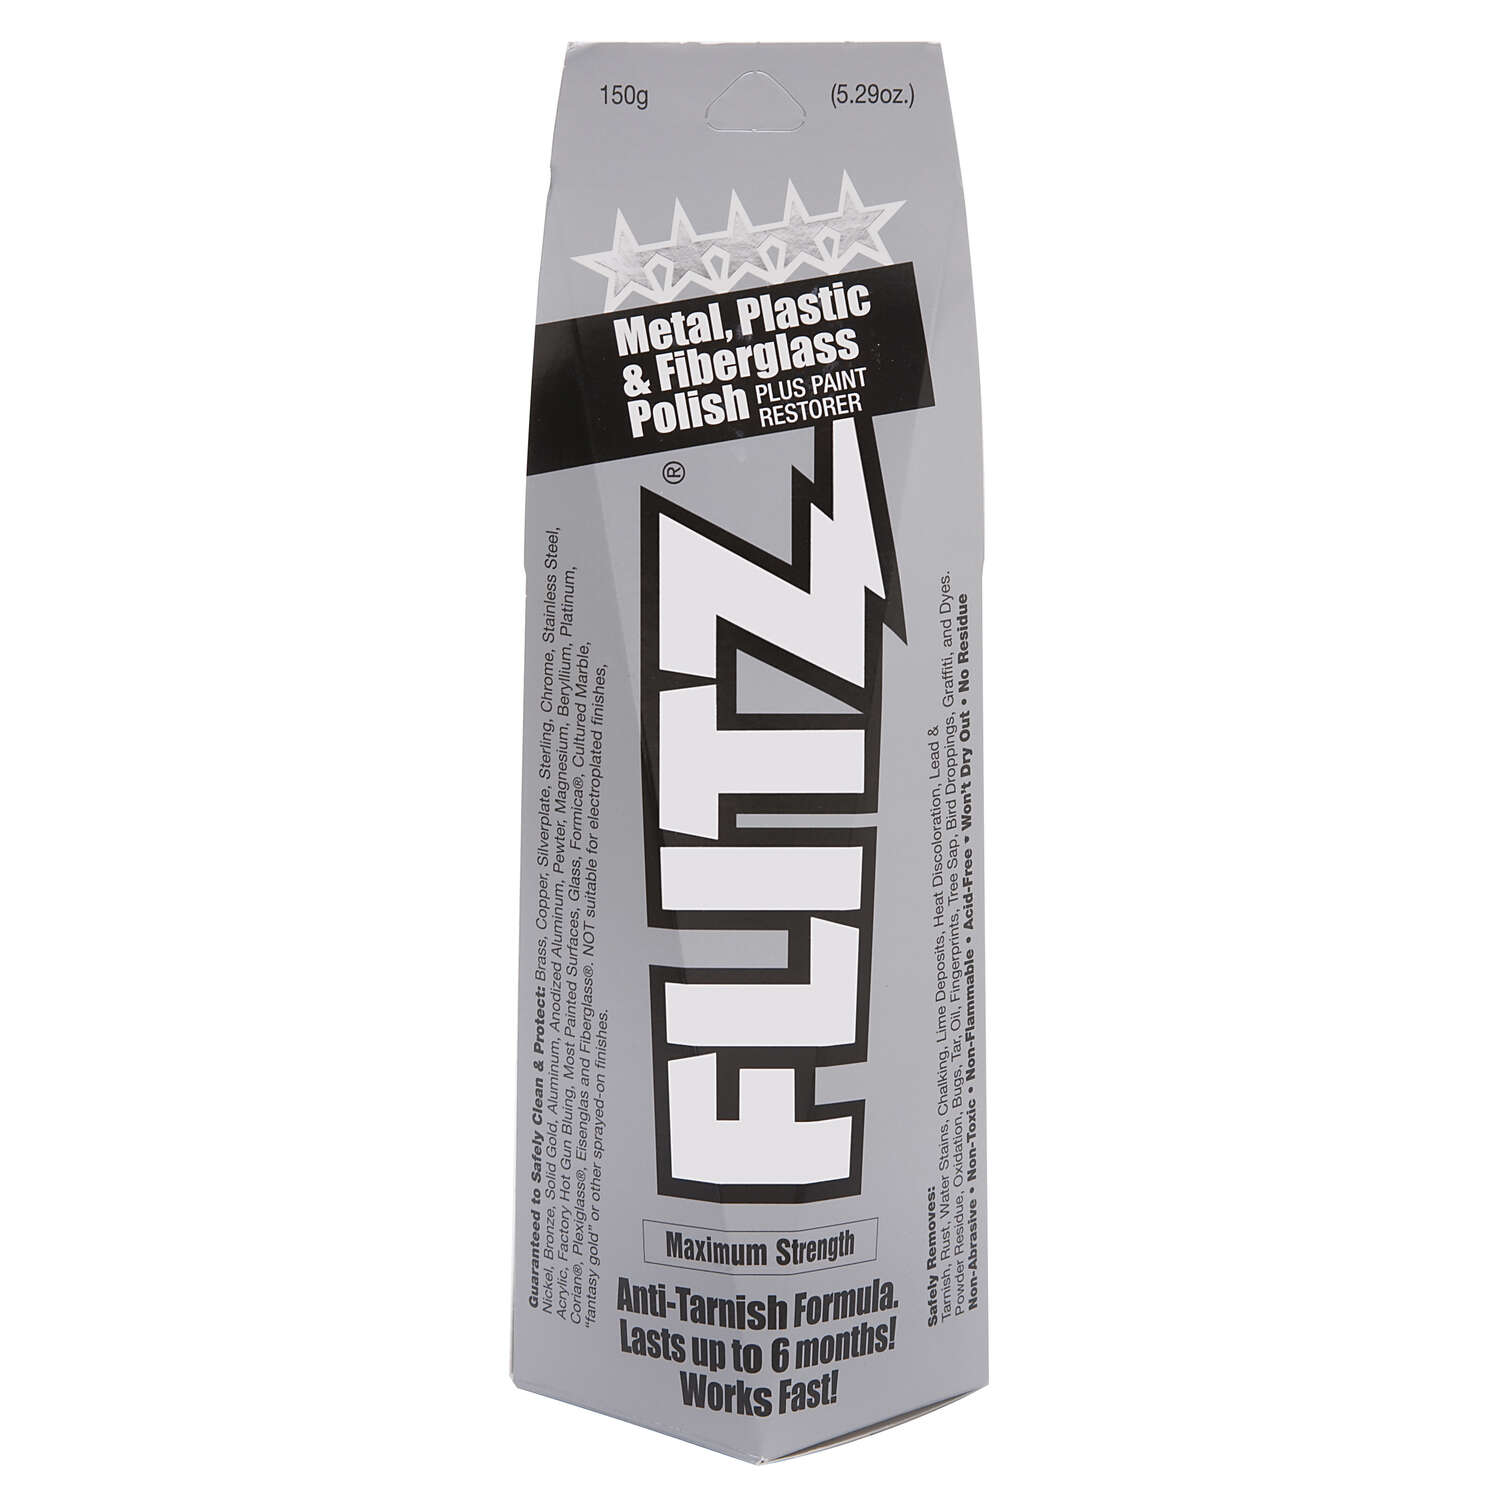 Flitz  Metal Polish  5.29 oz. Cream